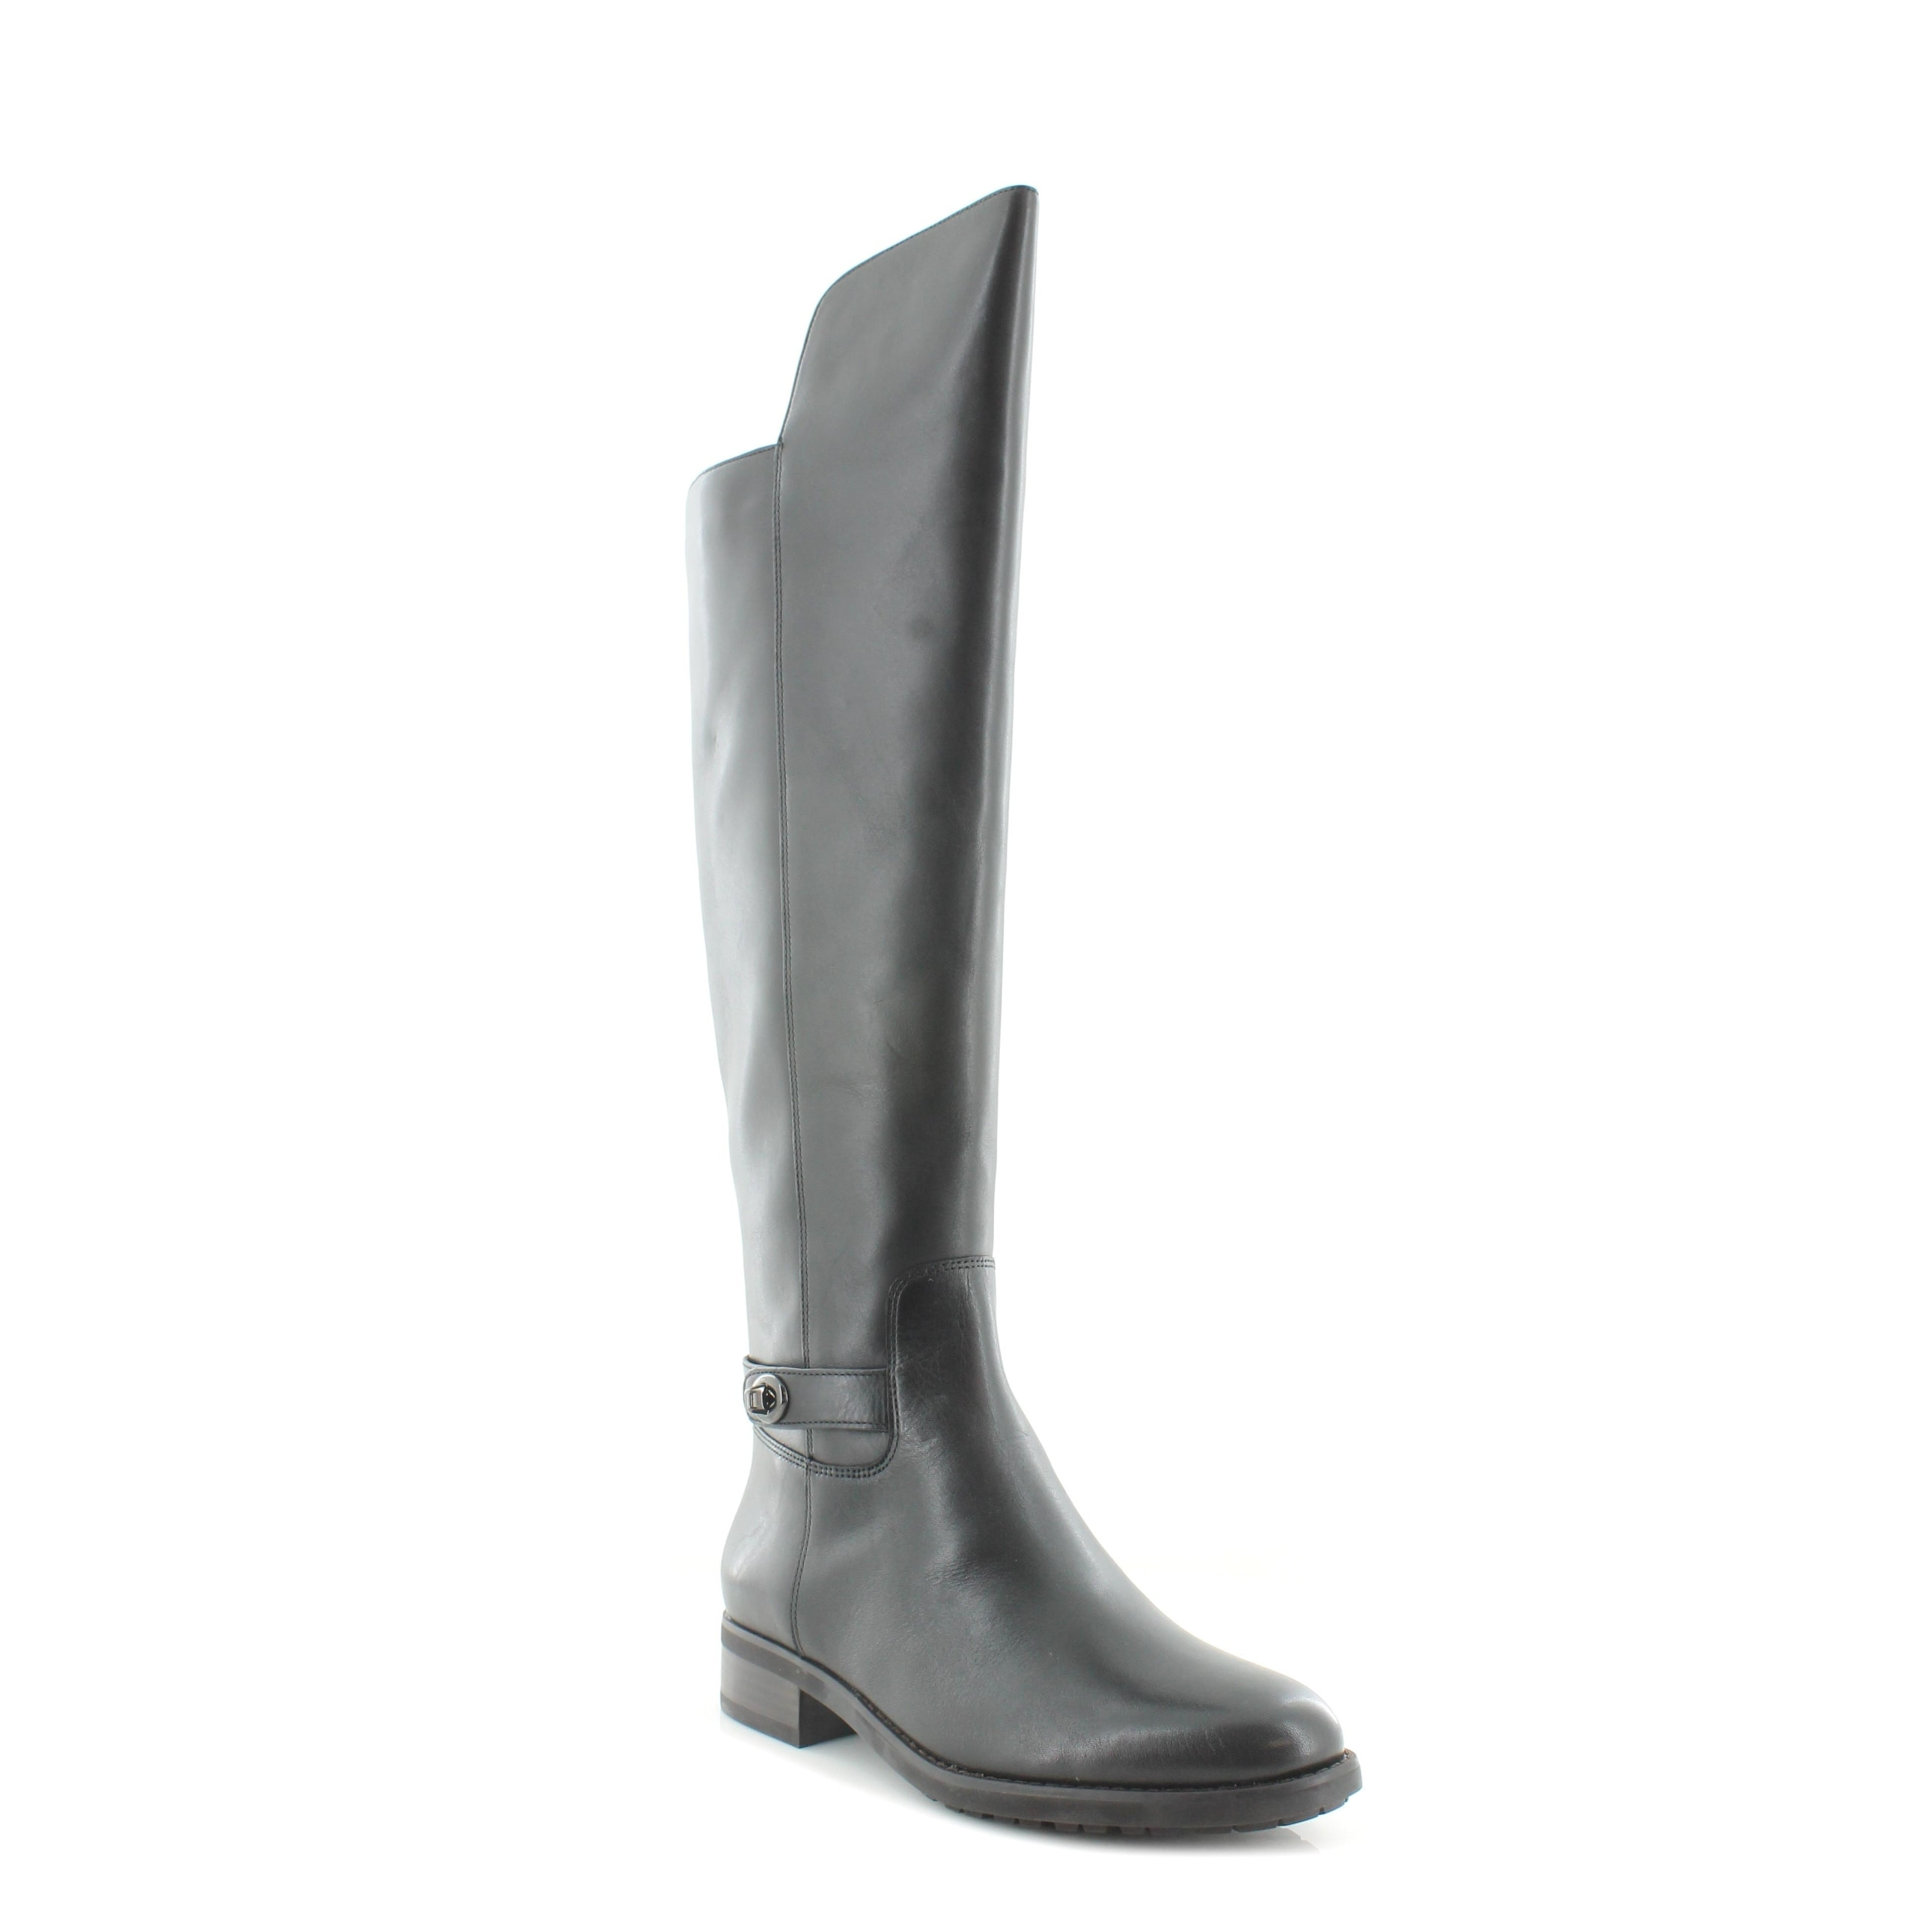 5f283a5dd85 Buy Coach Women s Boots Online at Overstock